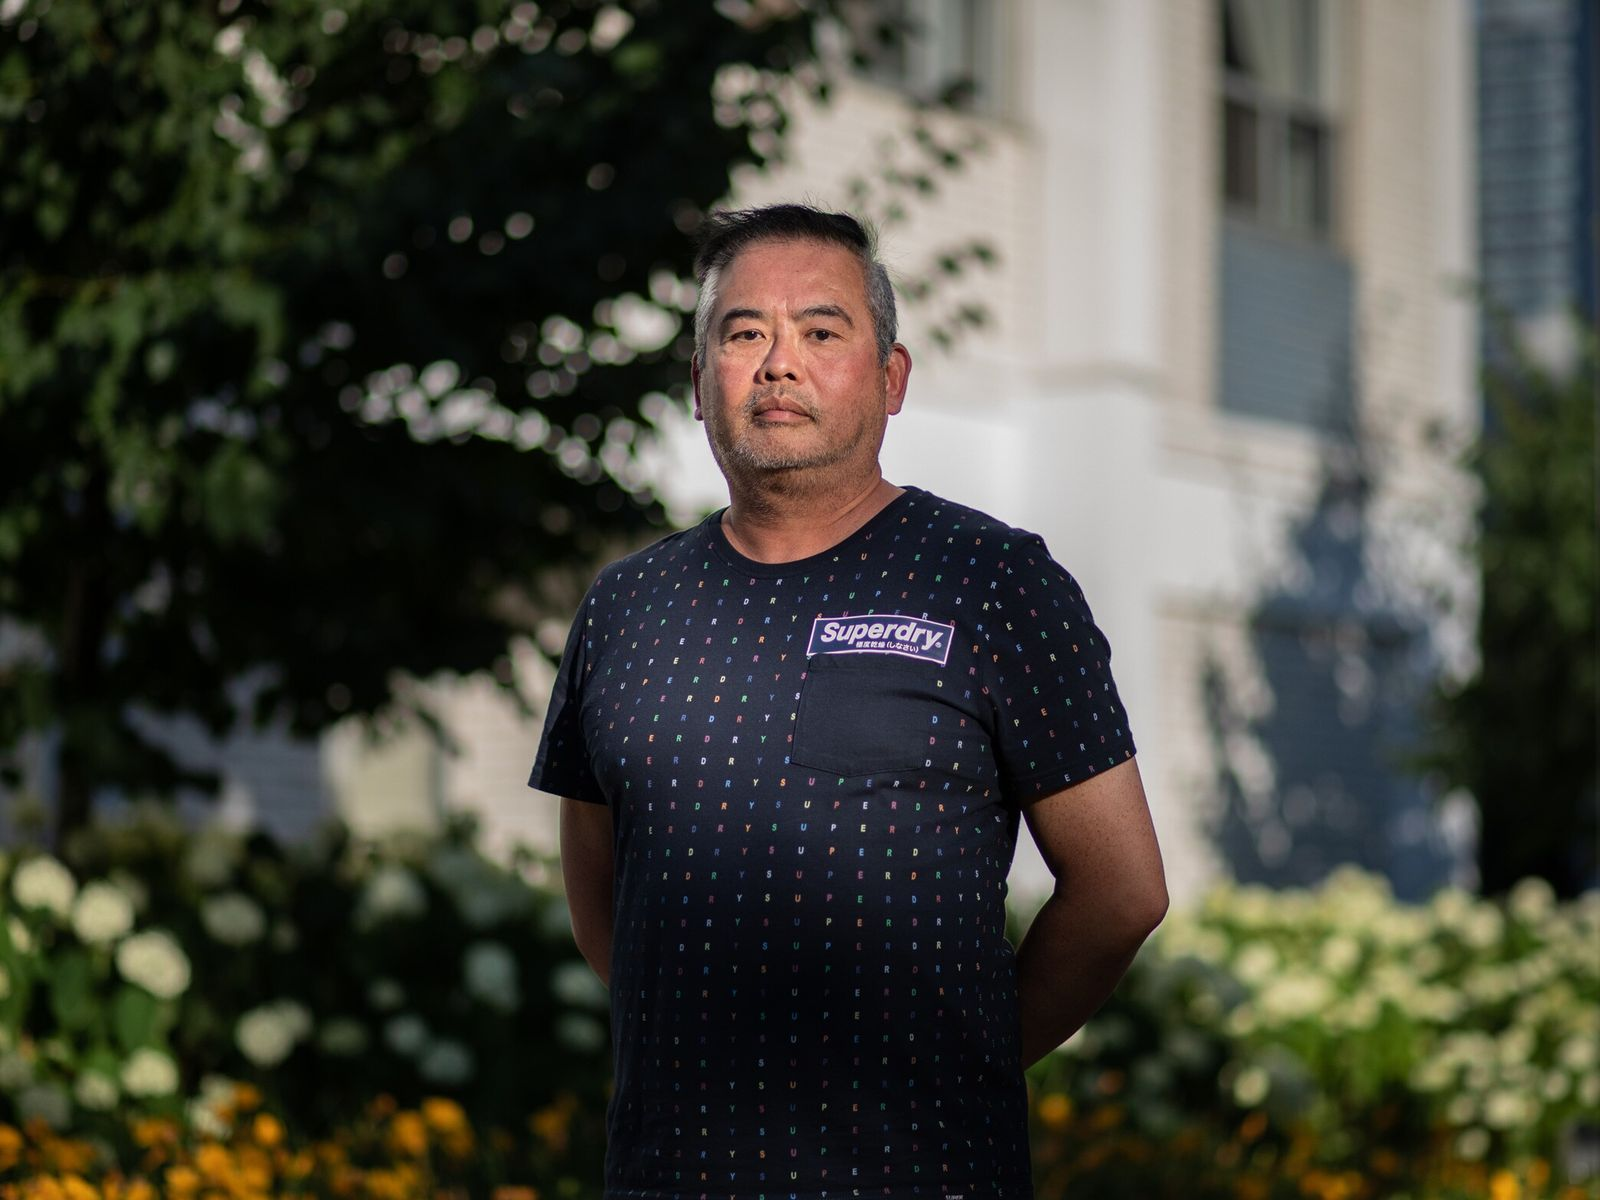 Canadian Andre Goh—who is of Southeast Asian, Chinese, and Eurasian descent—has long been aware of subtle ...